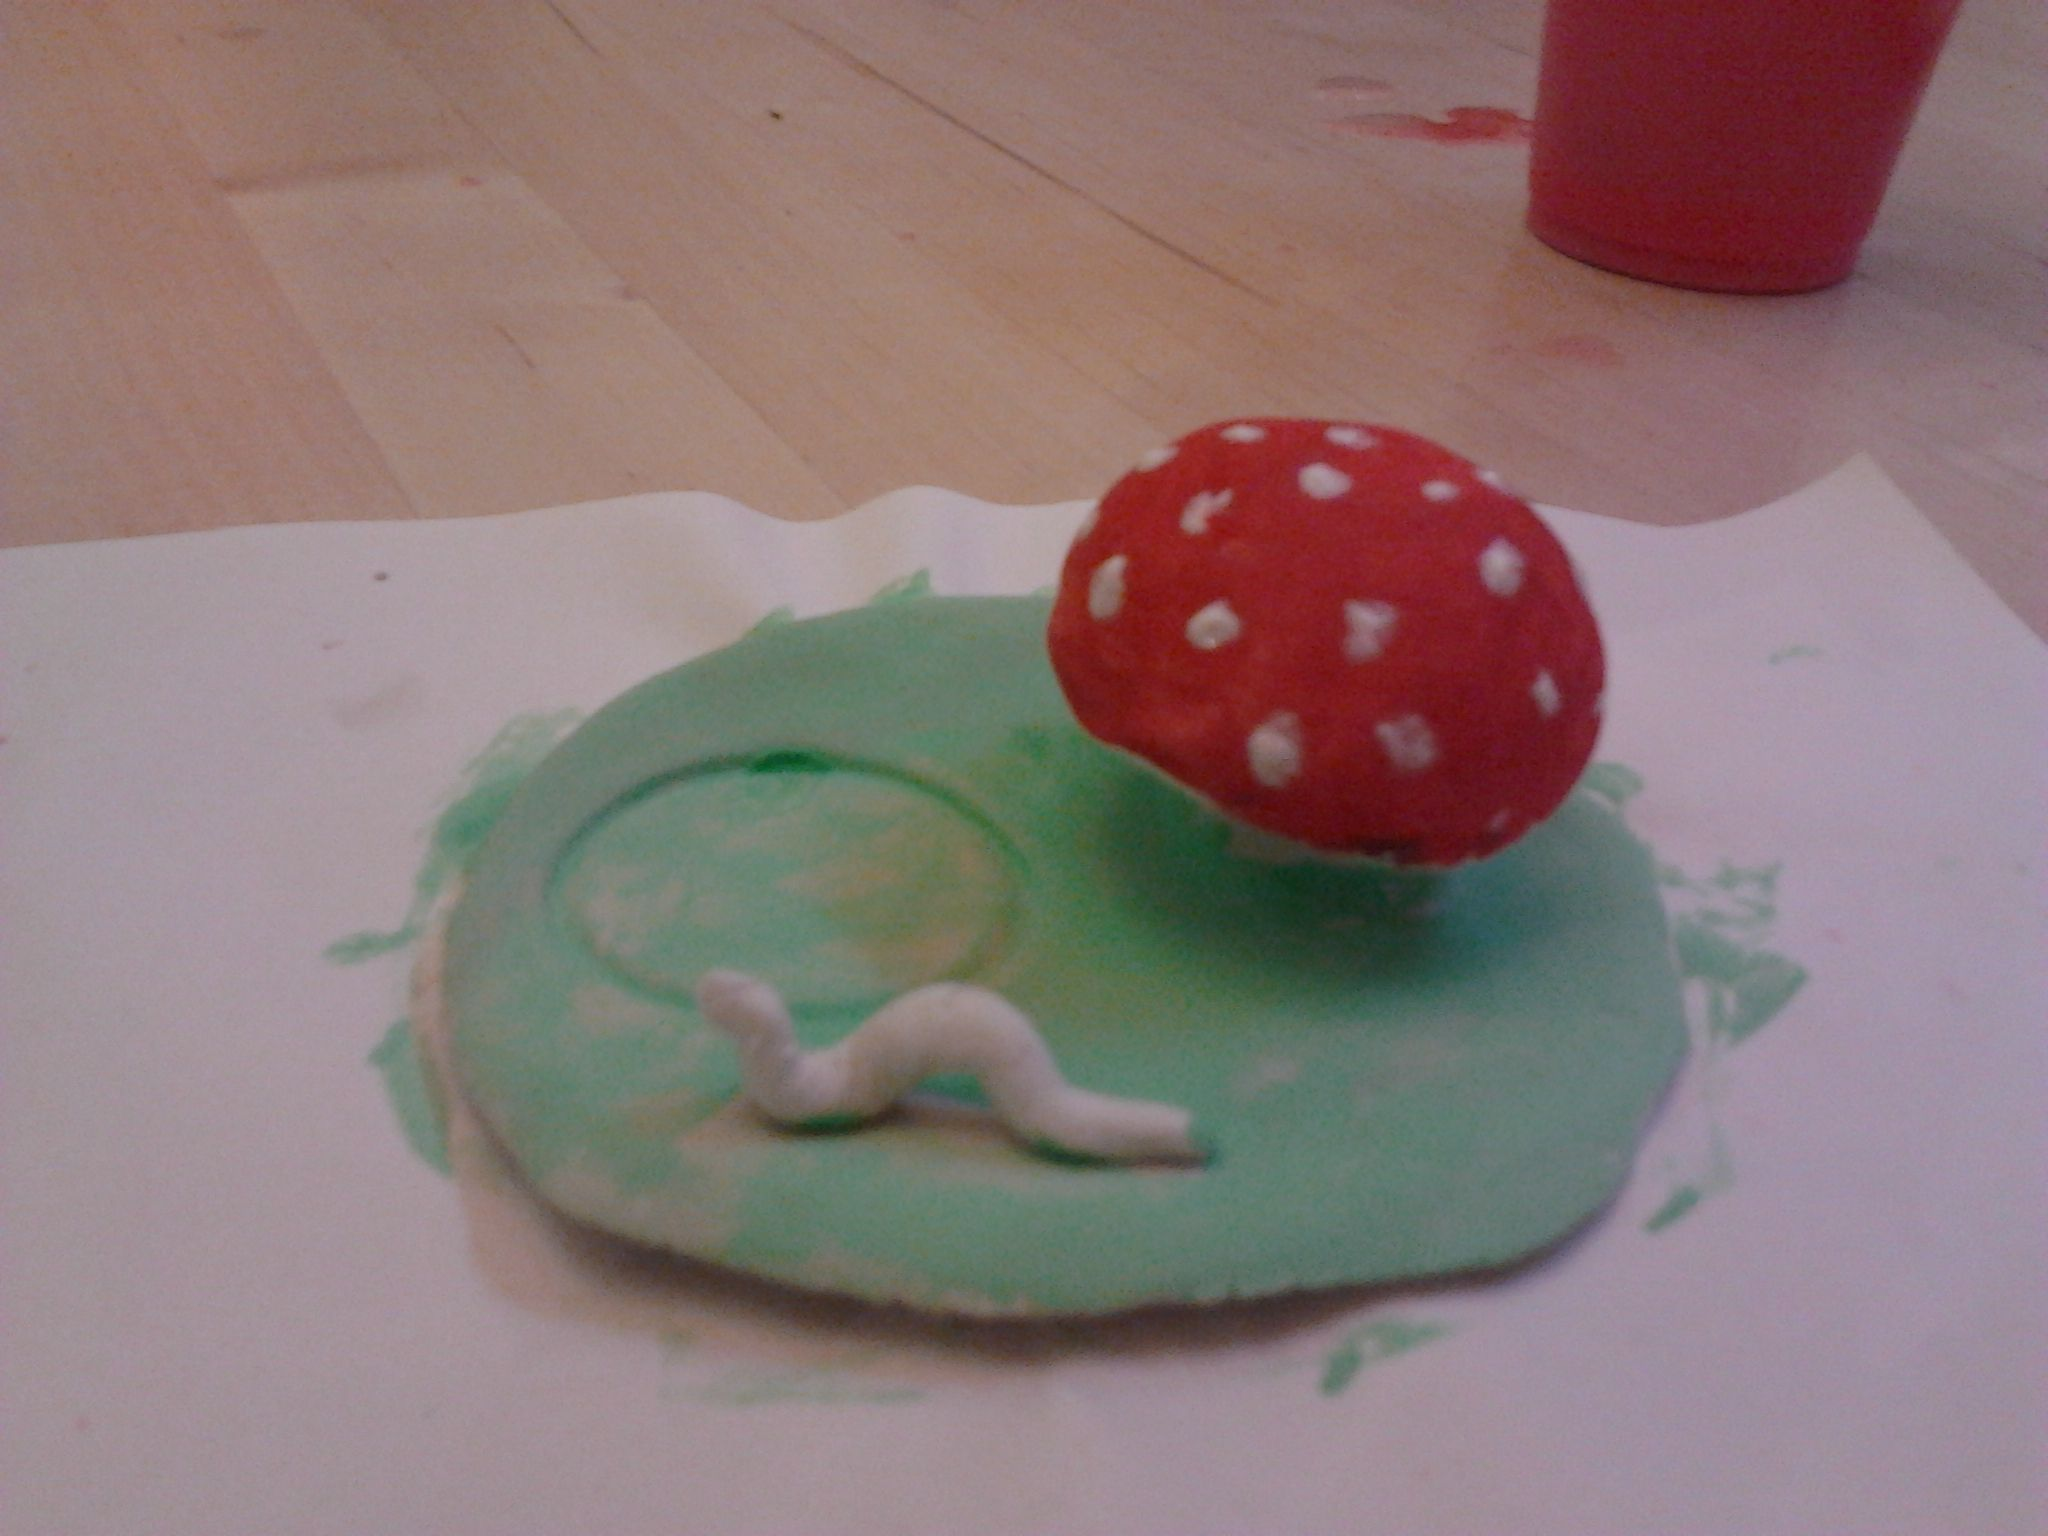 easy clay project | herfst | Pinterest